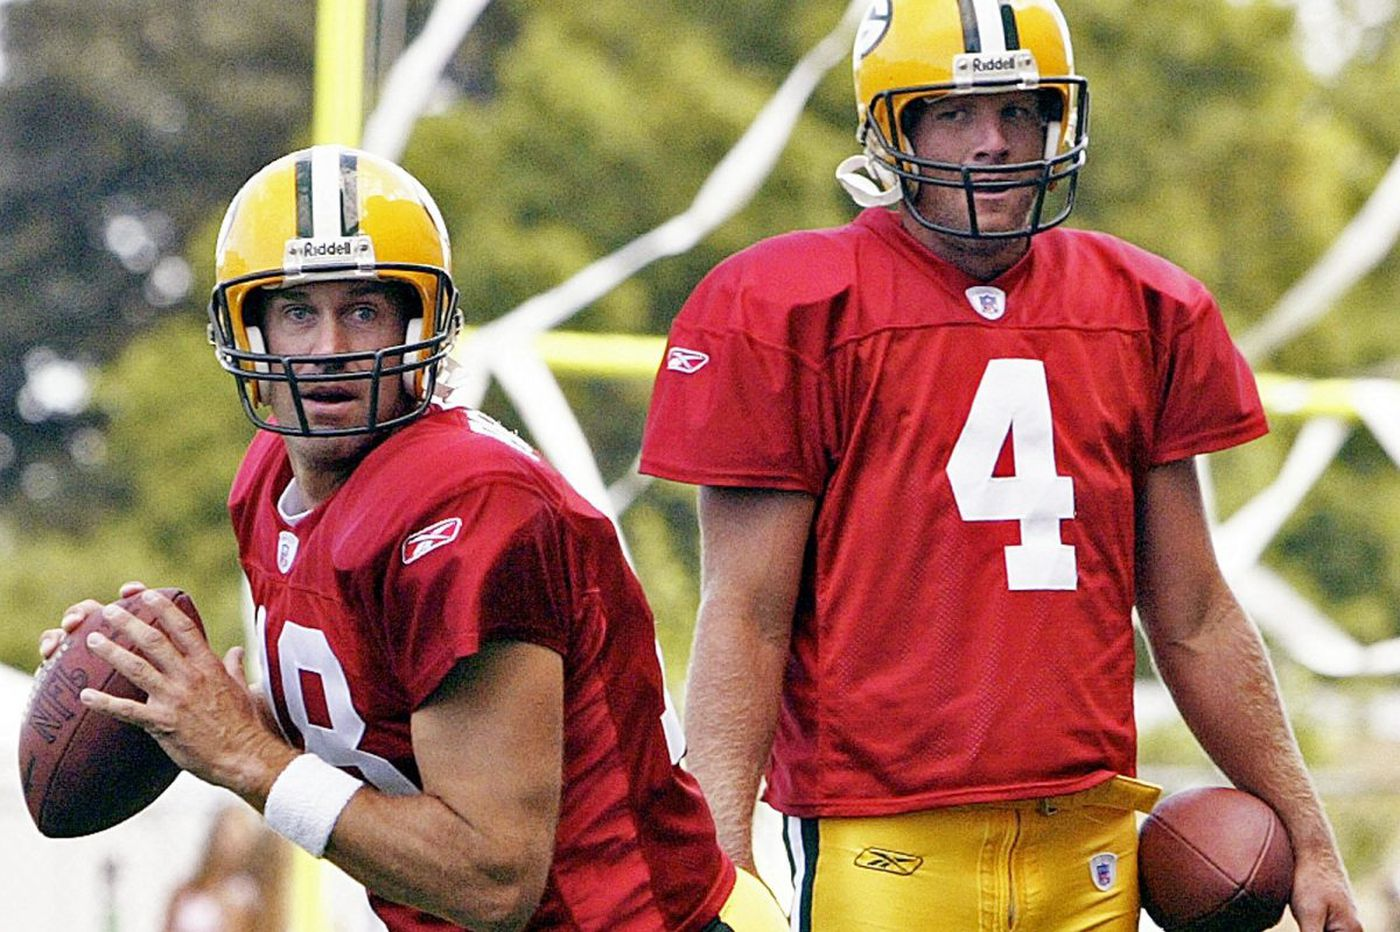 Brett Favre to speak to the Eagles on Saturday morning, ahead of Super Bowl in Minneapolis